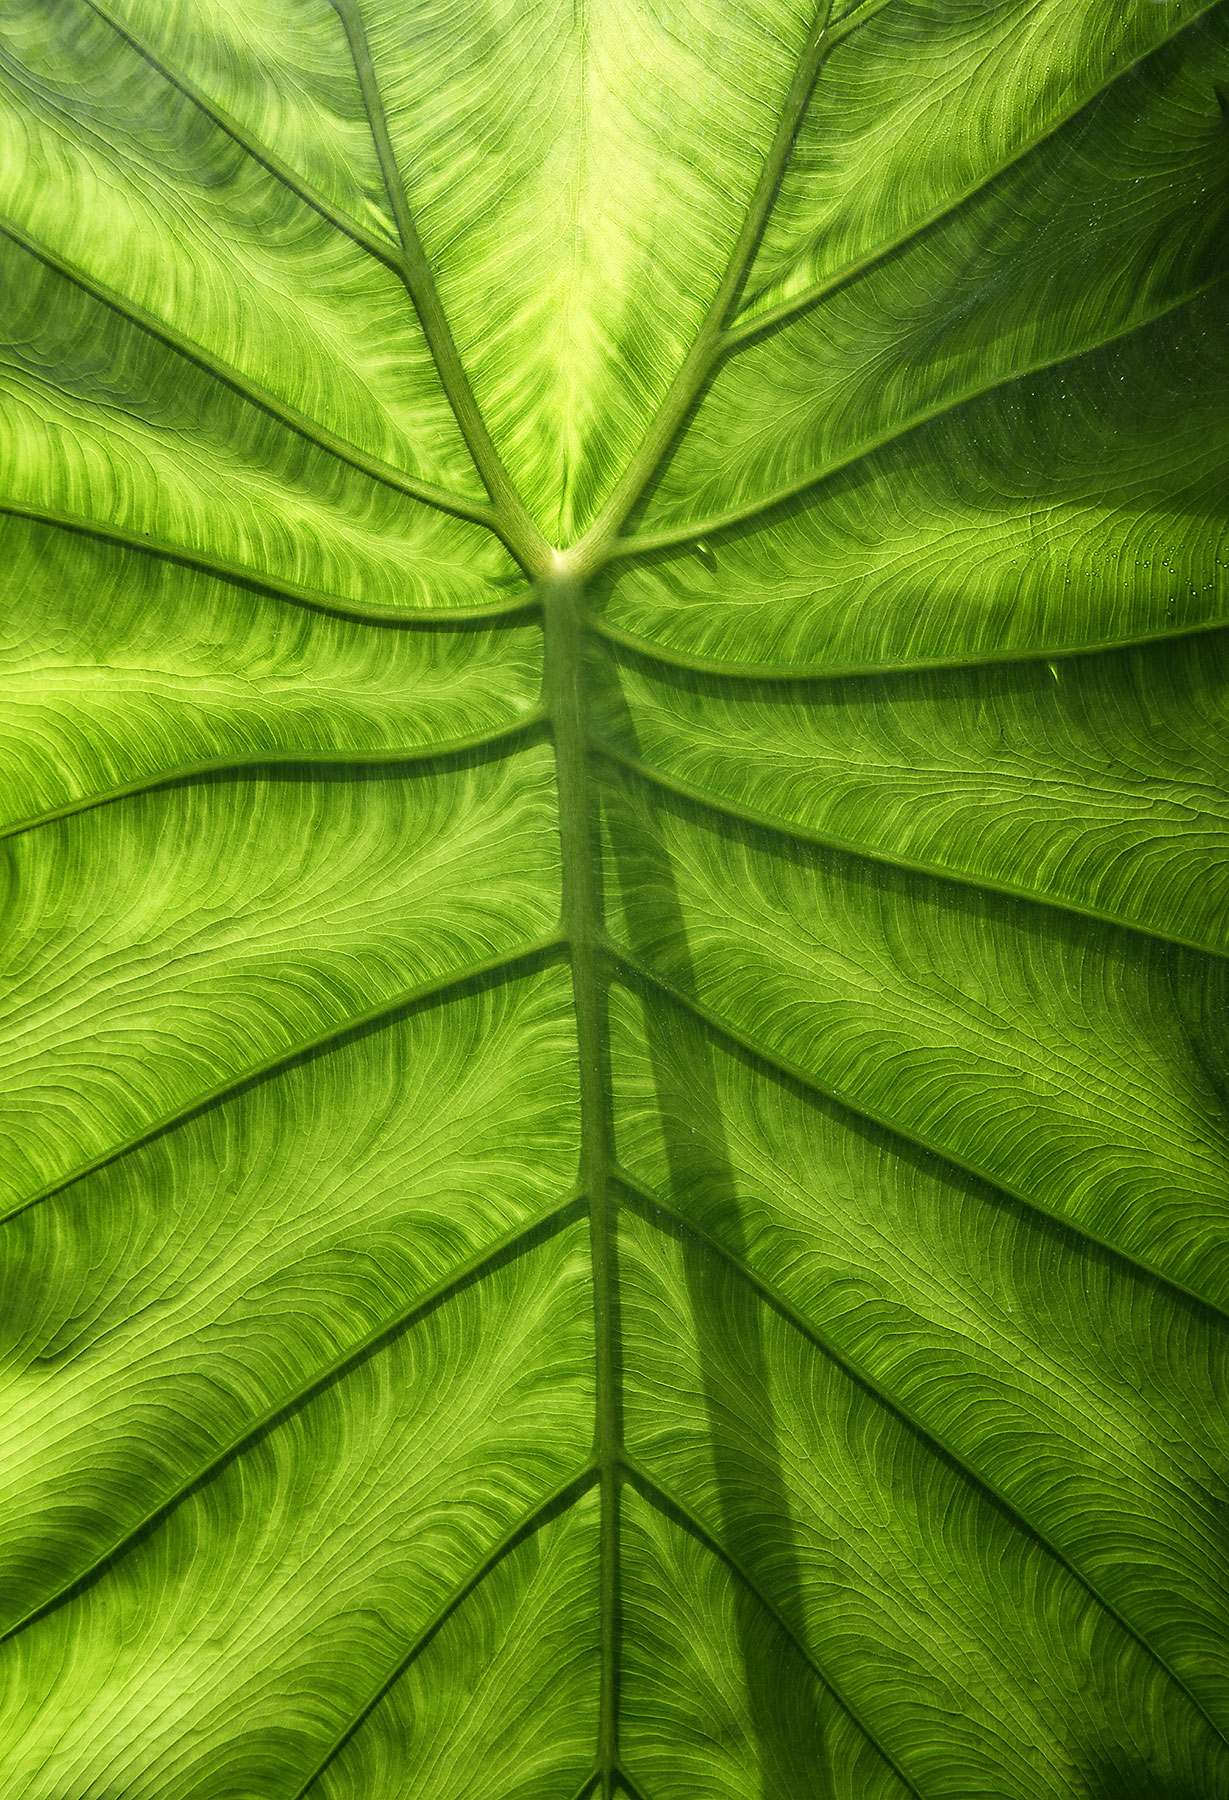 elephant ear leaf